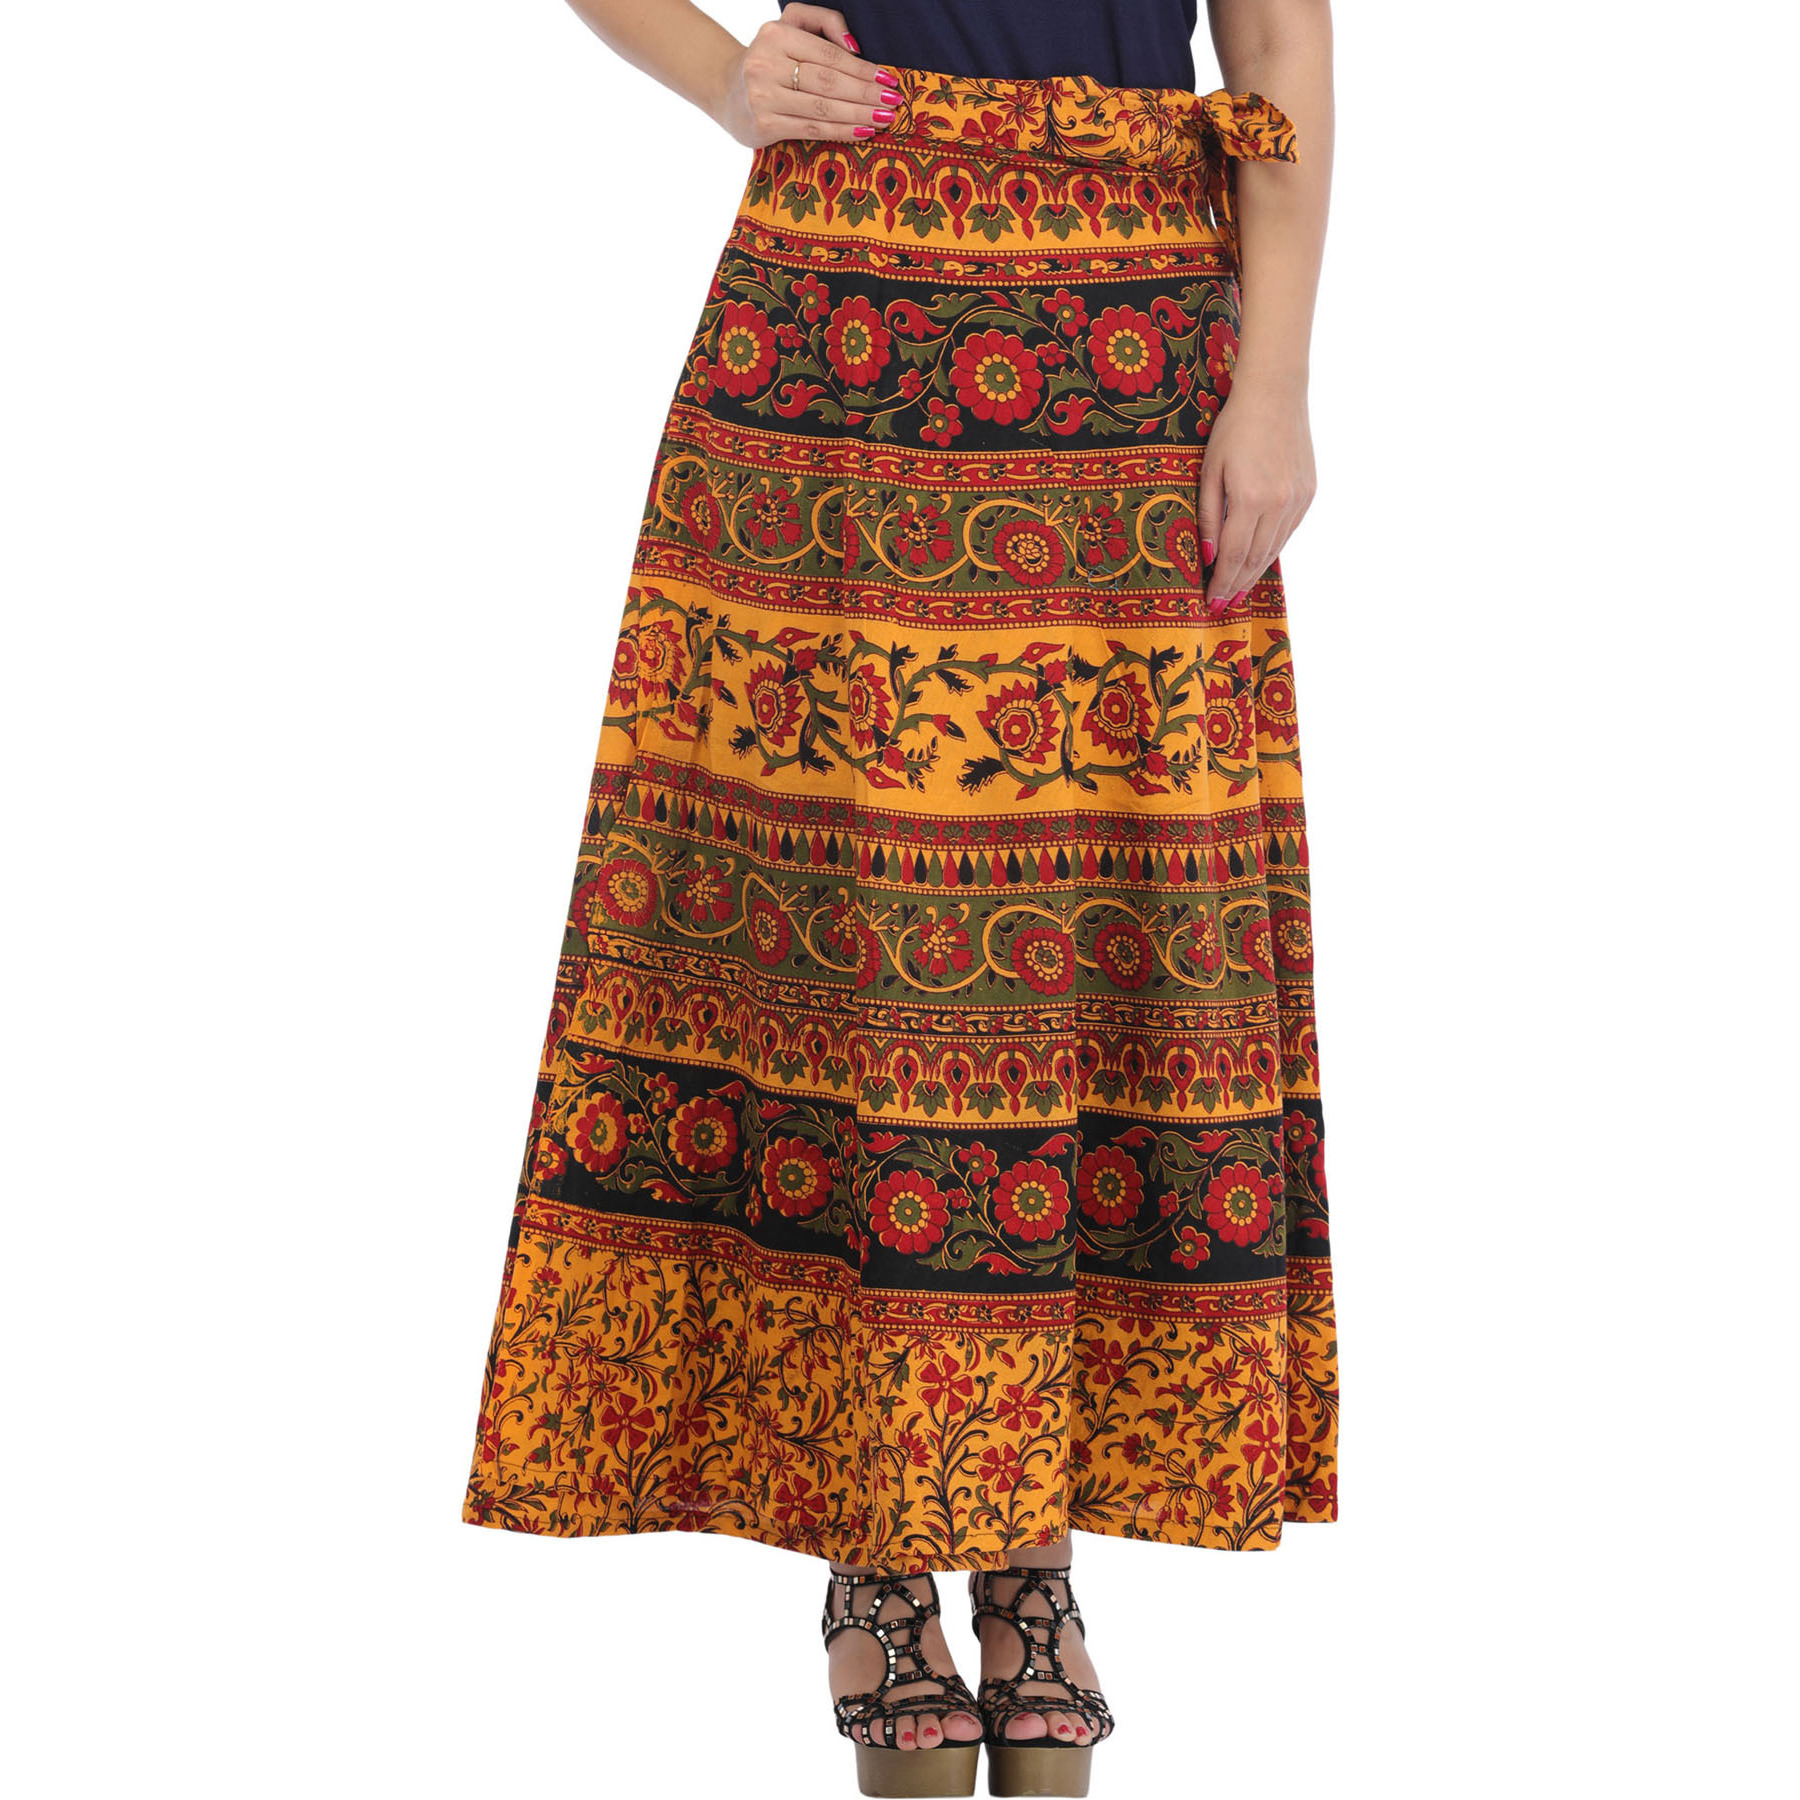 Marigold Floral Printed Wrap-Around Long Skirt from Pilkhuwa